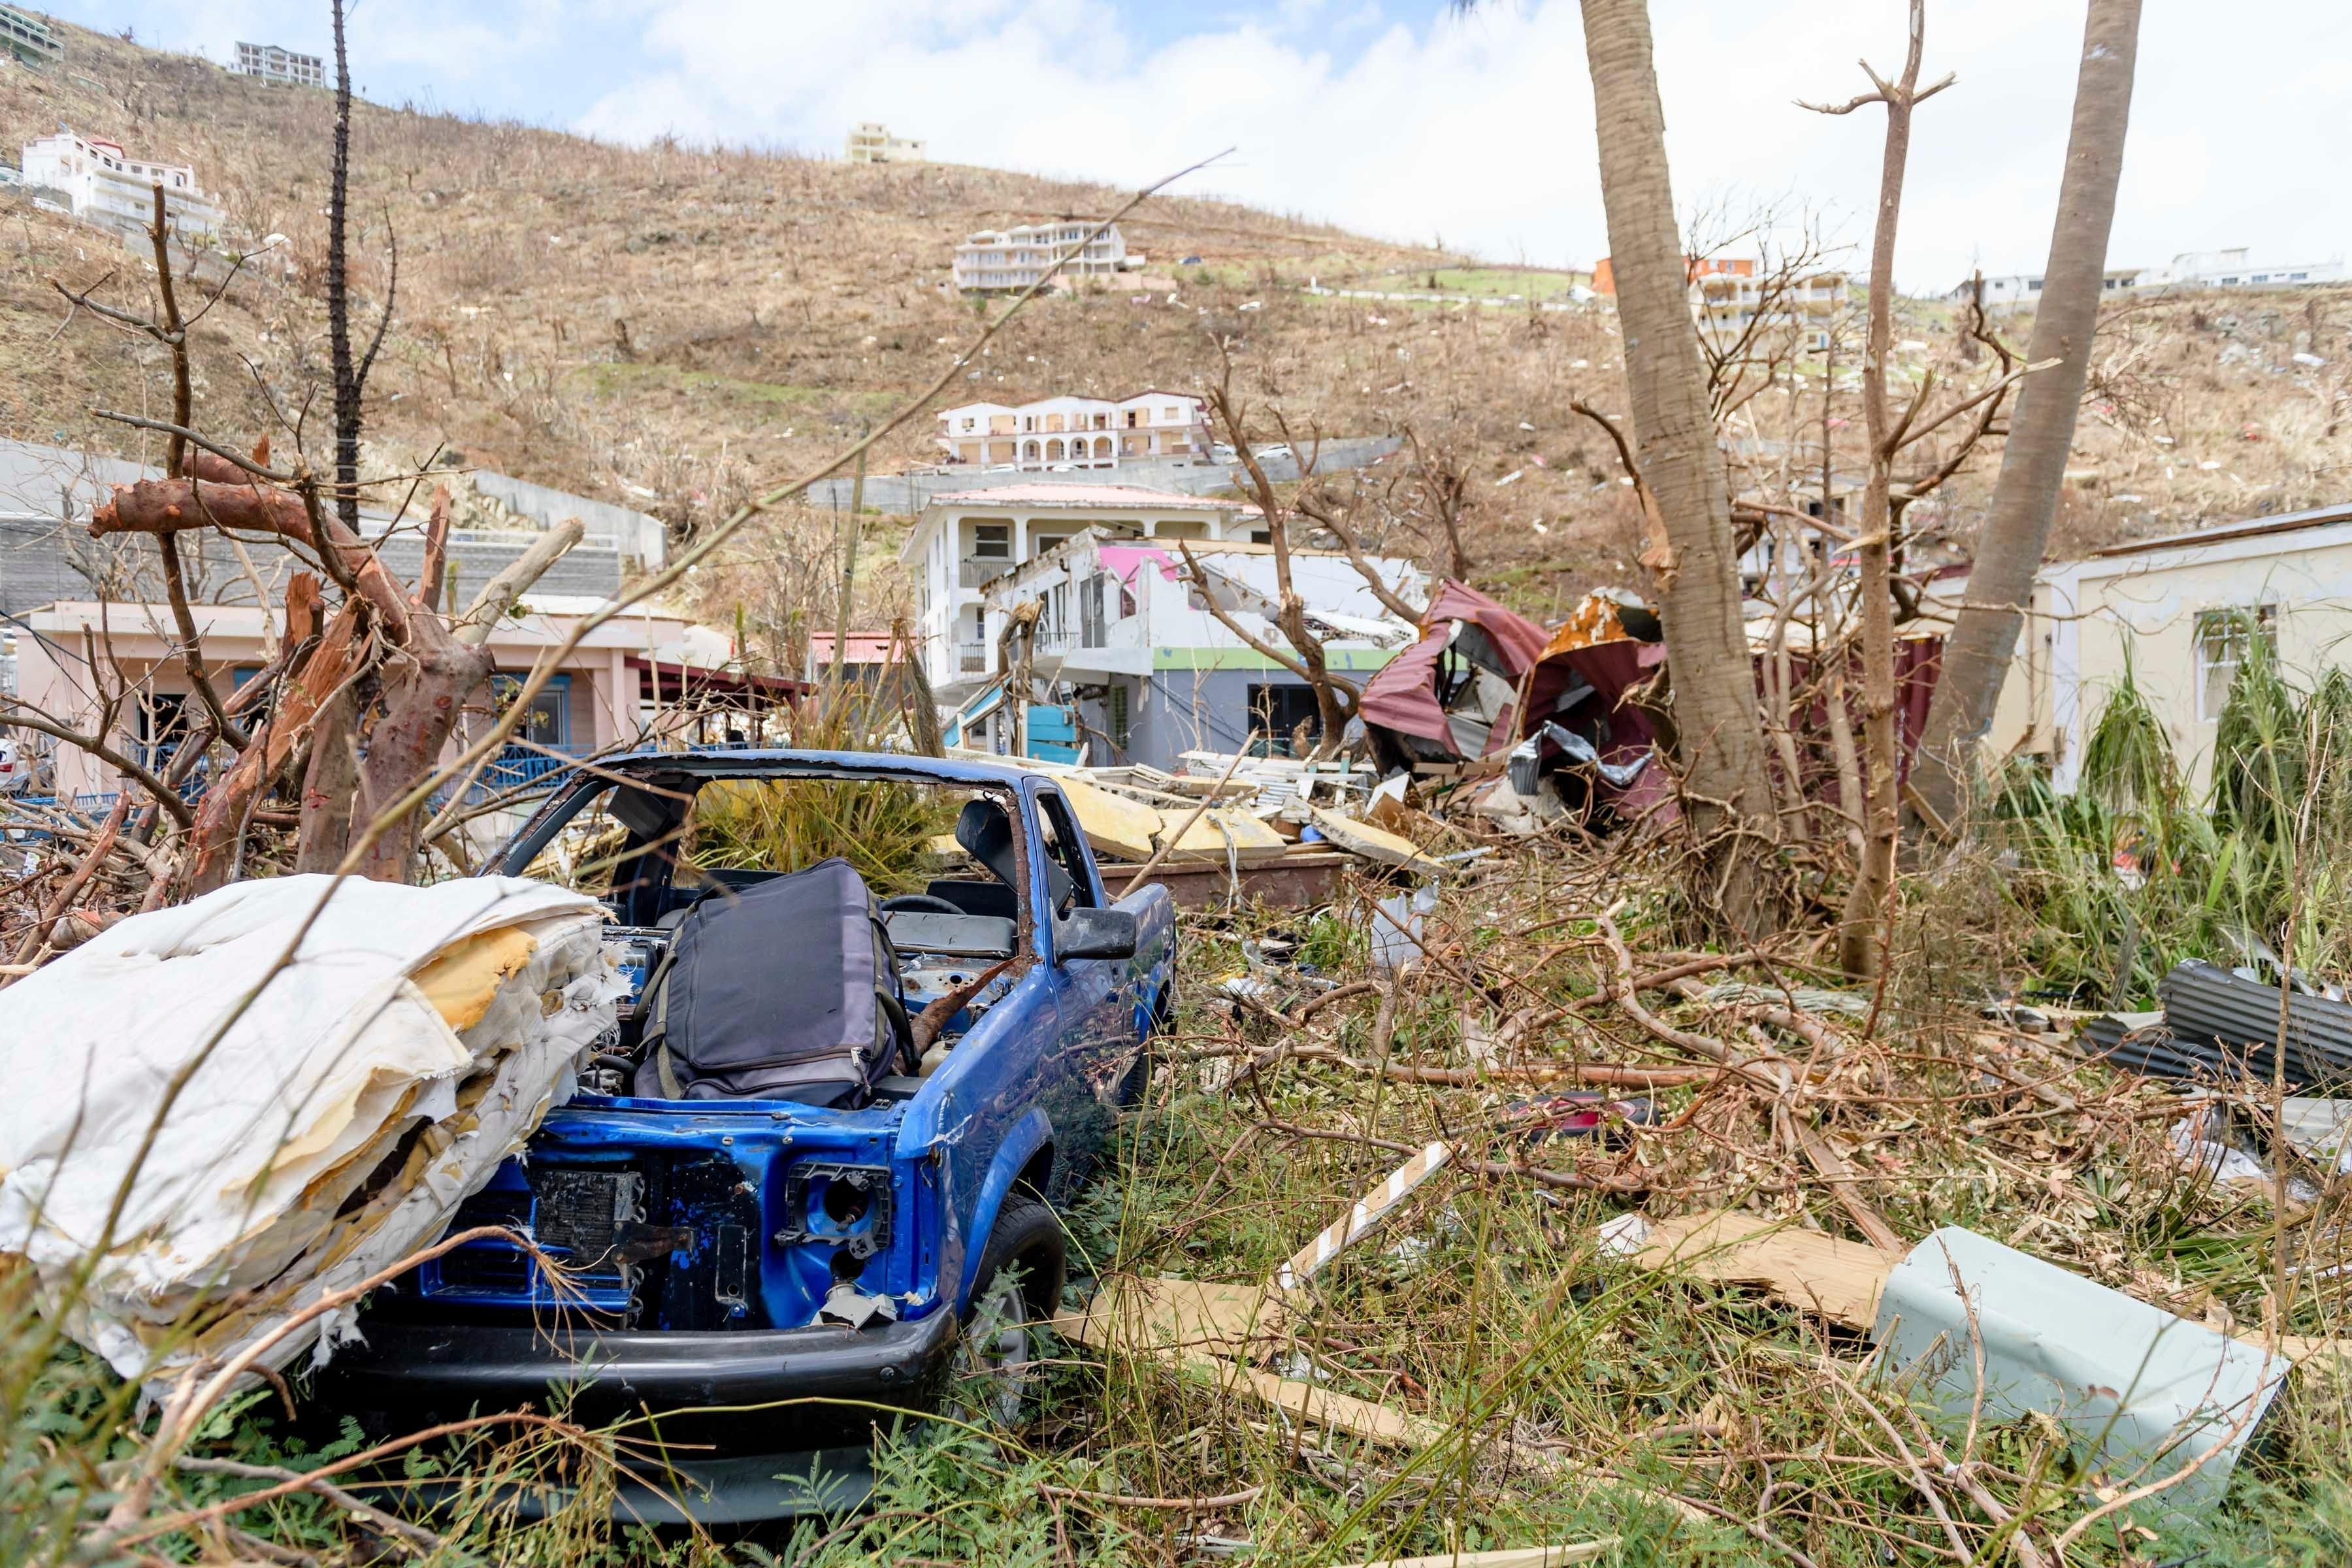 In this undated photo provided on Sunday Sept. 10, 2017, by the British Ministry of Defence, cars that have been turned to wrecks by Hurricane Irma on the British Virgin Islands. The wild isolation that made St. Barts, St. Martin, Anguilla and the Virgin Islands vacation paradises has turned them into cutoff, chaotic nightmares in the wake of Hurricane Irma, which left 22 people dead, mostly in the Leeward Islands. (MOD via AP)